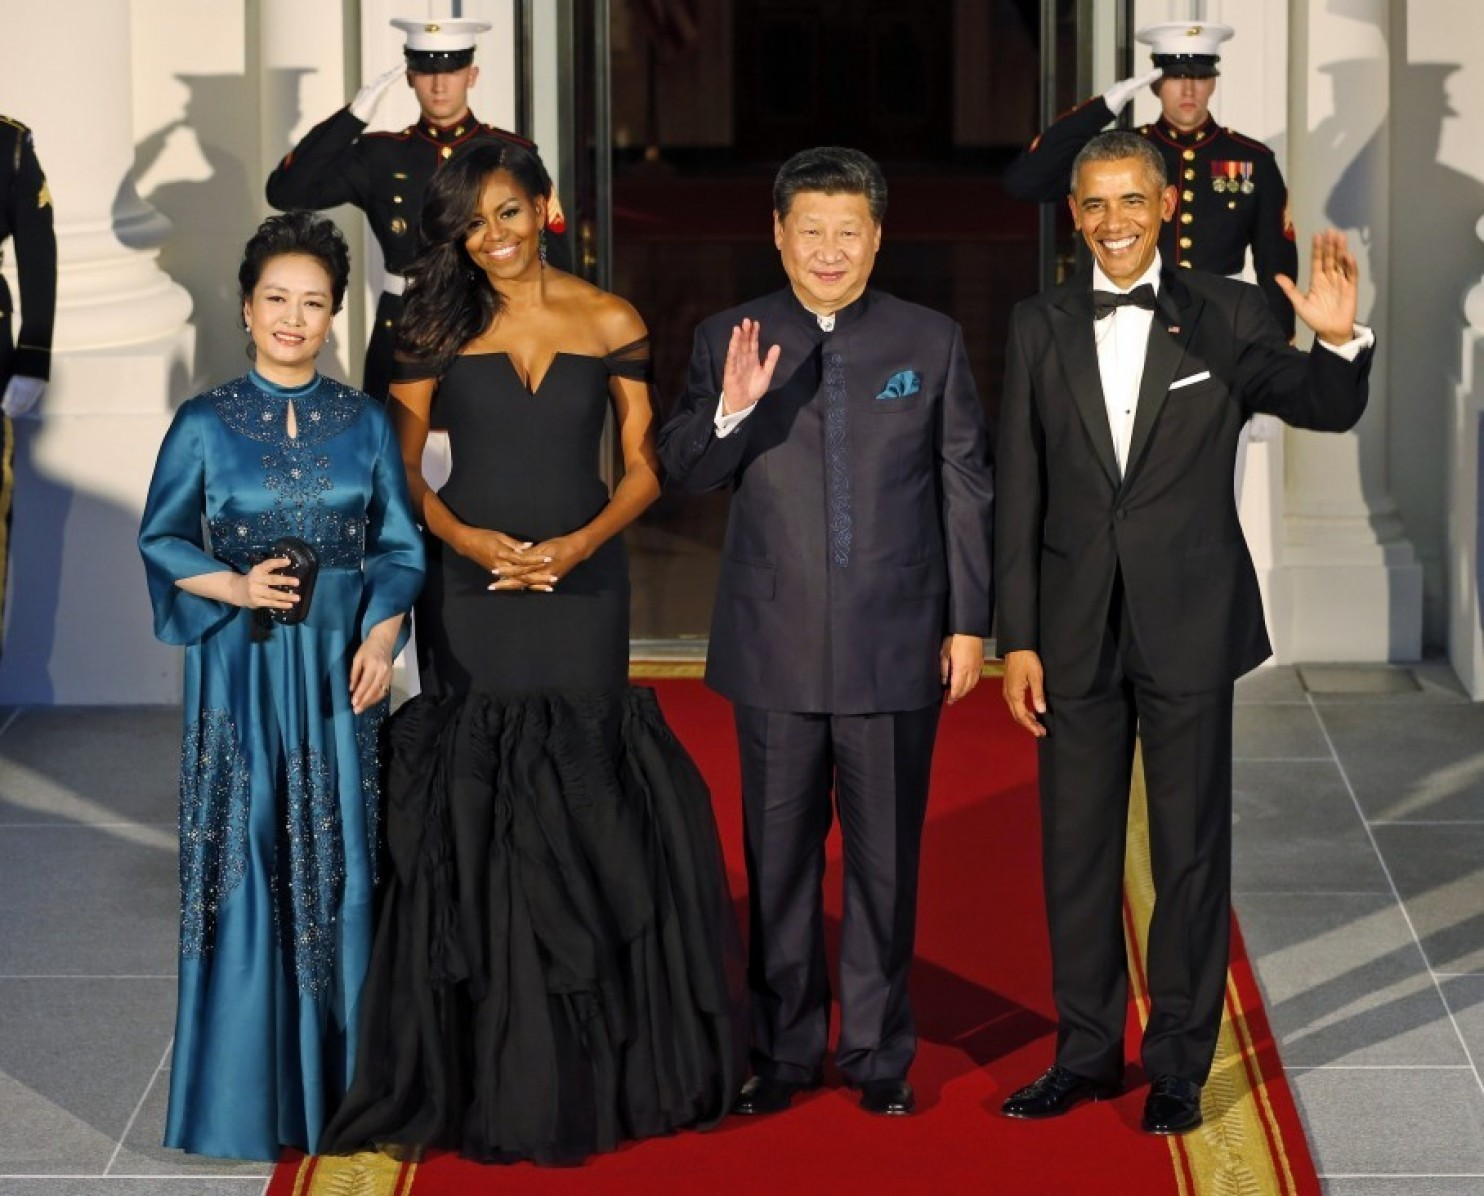 michelle-obama-in-vera-wang-2015-white-house-state-dinner